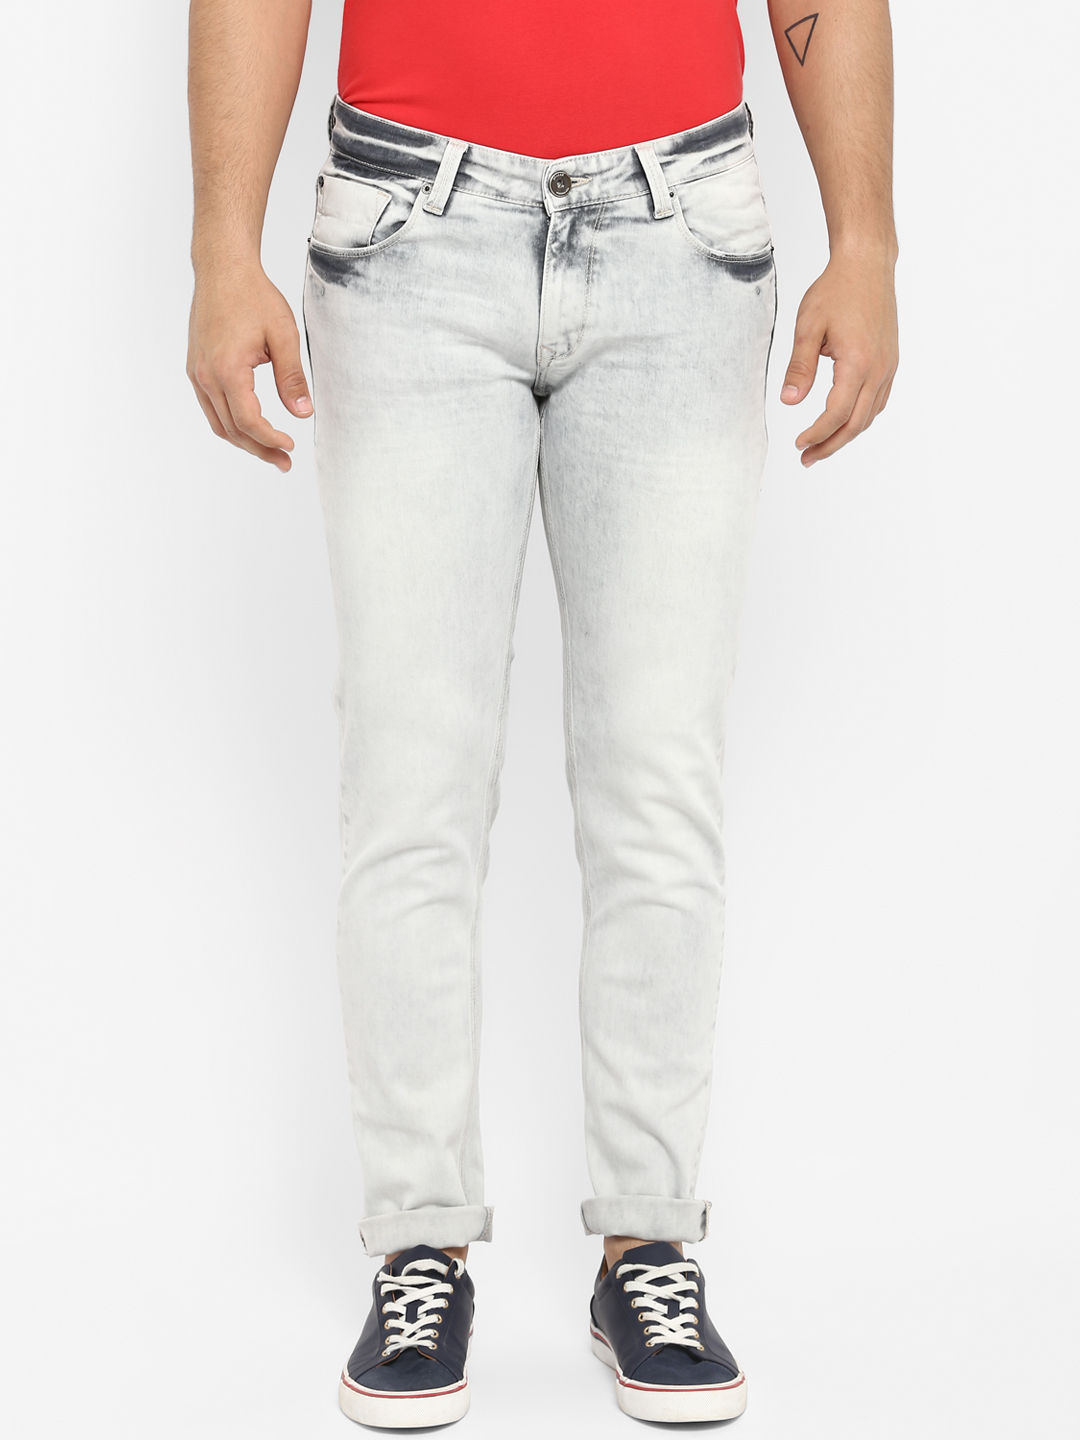 Light Grey Solid Skinny Fit Jeans